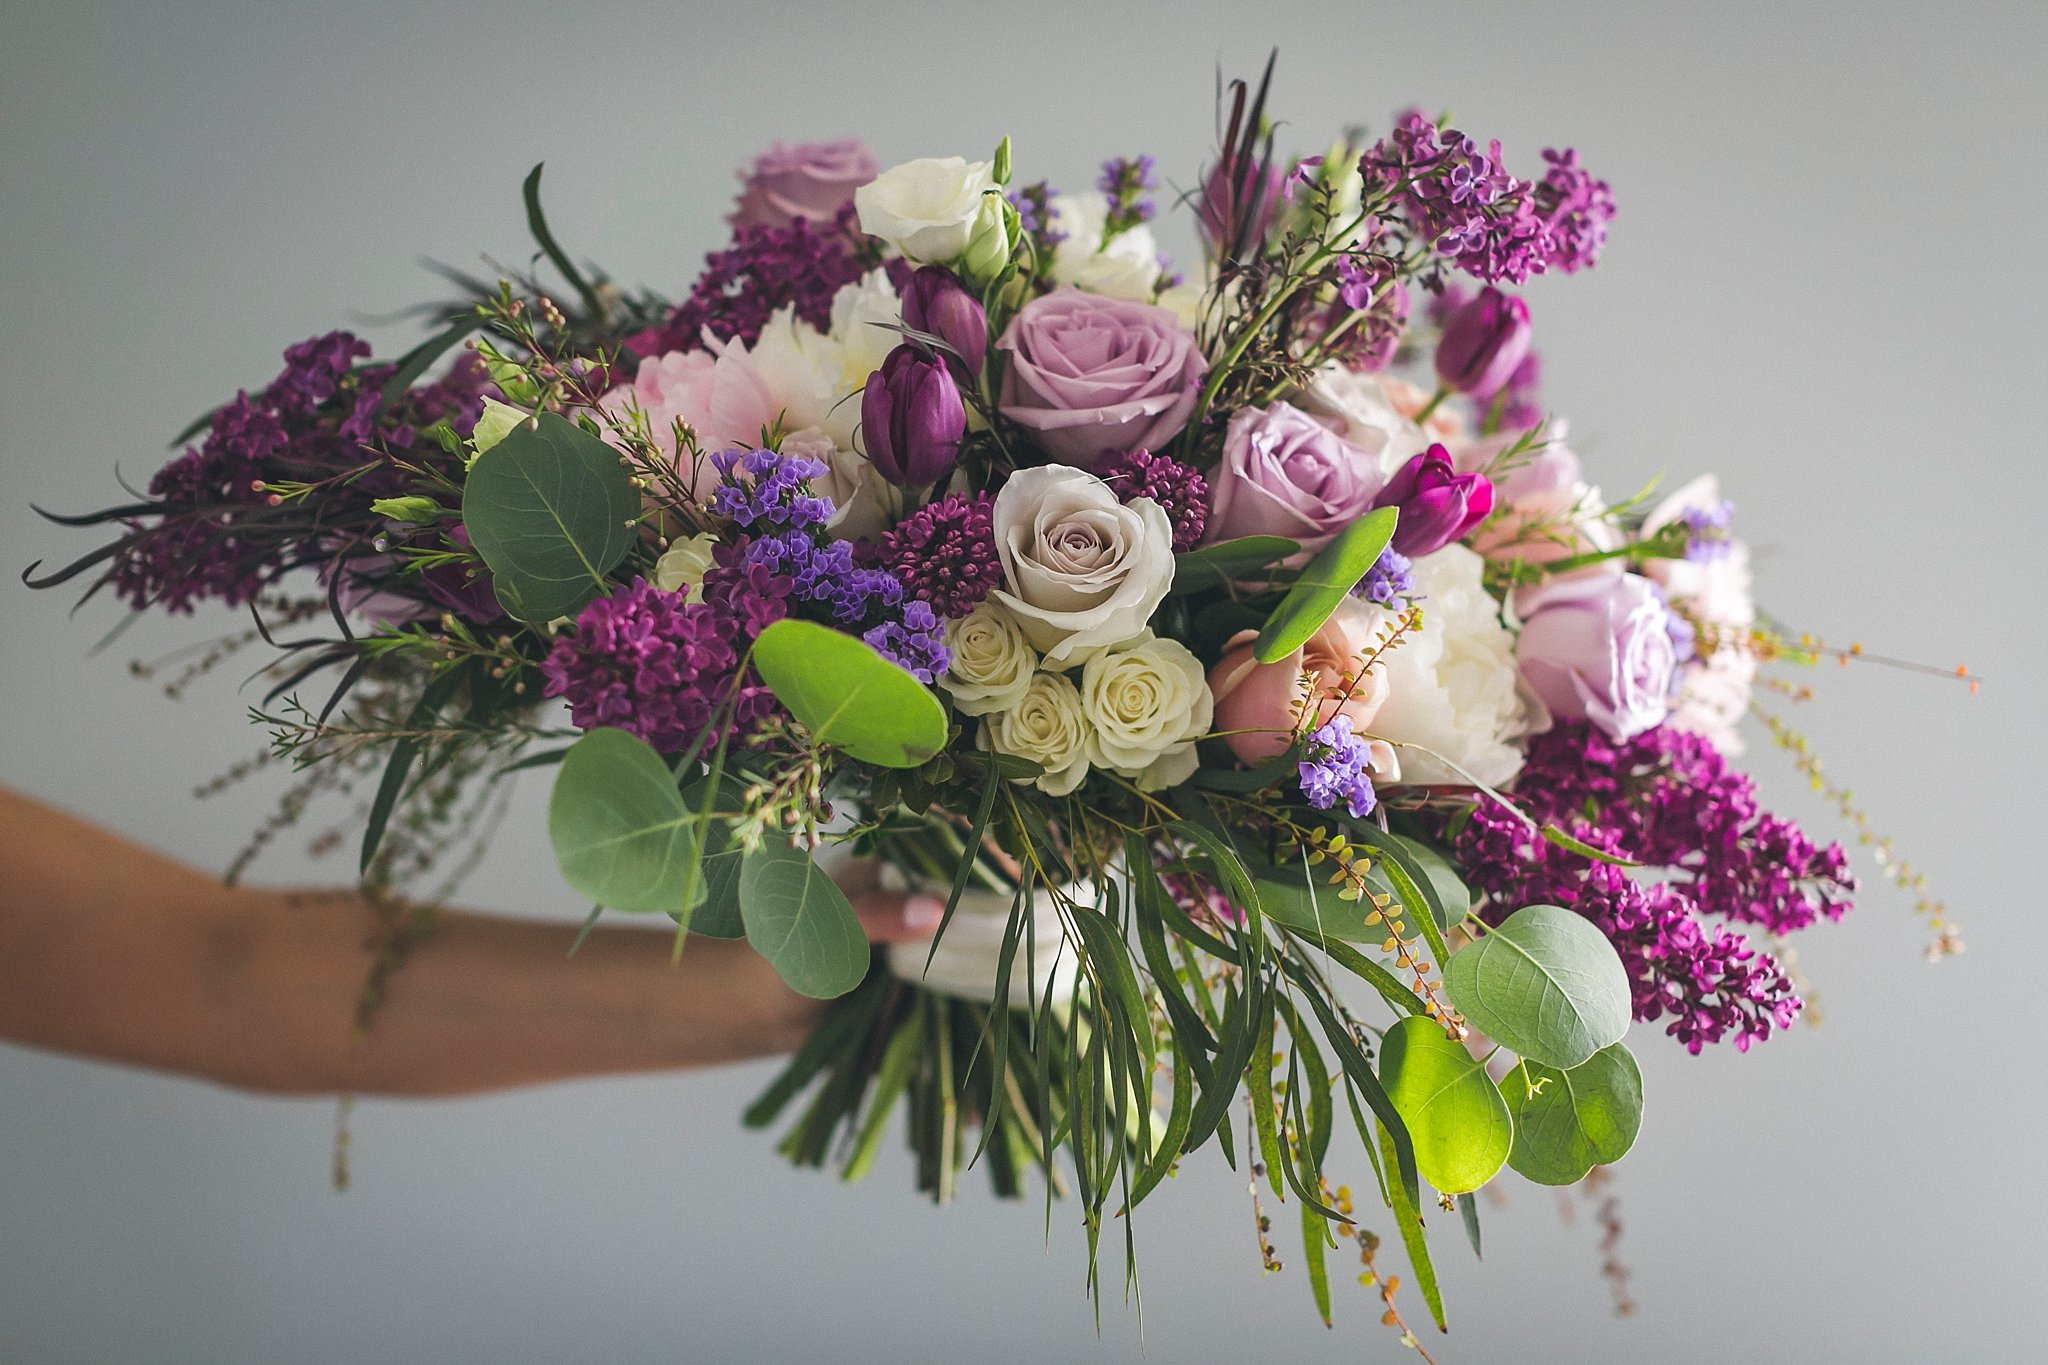 Bride's bouquet by Kristyna Adamova of Event 3Sixty in St. John's, NL